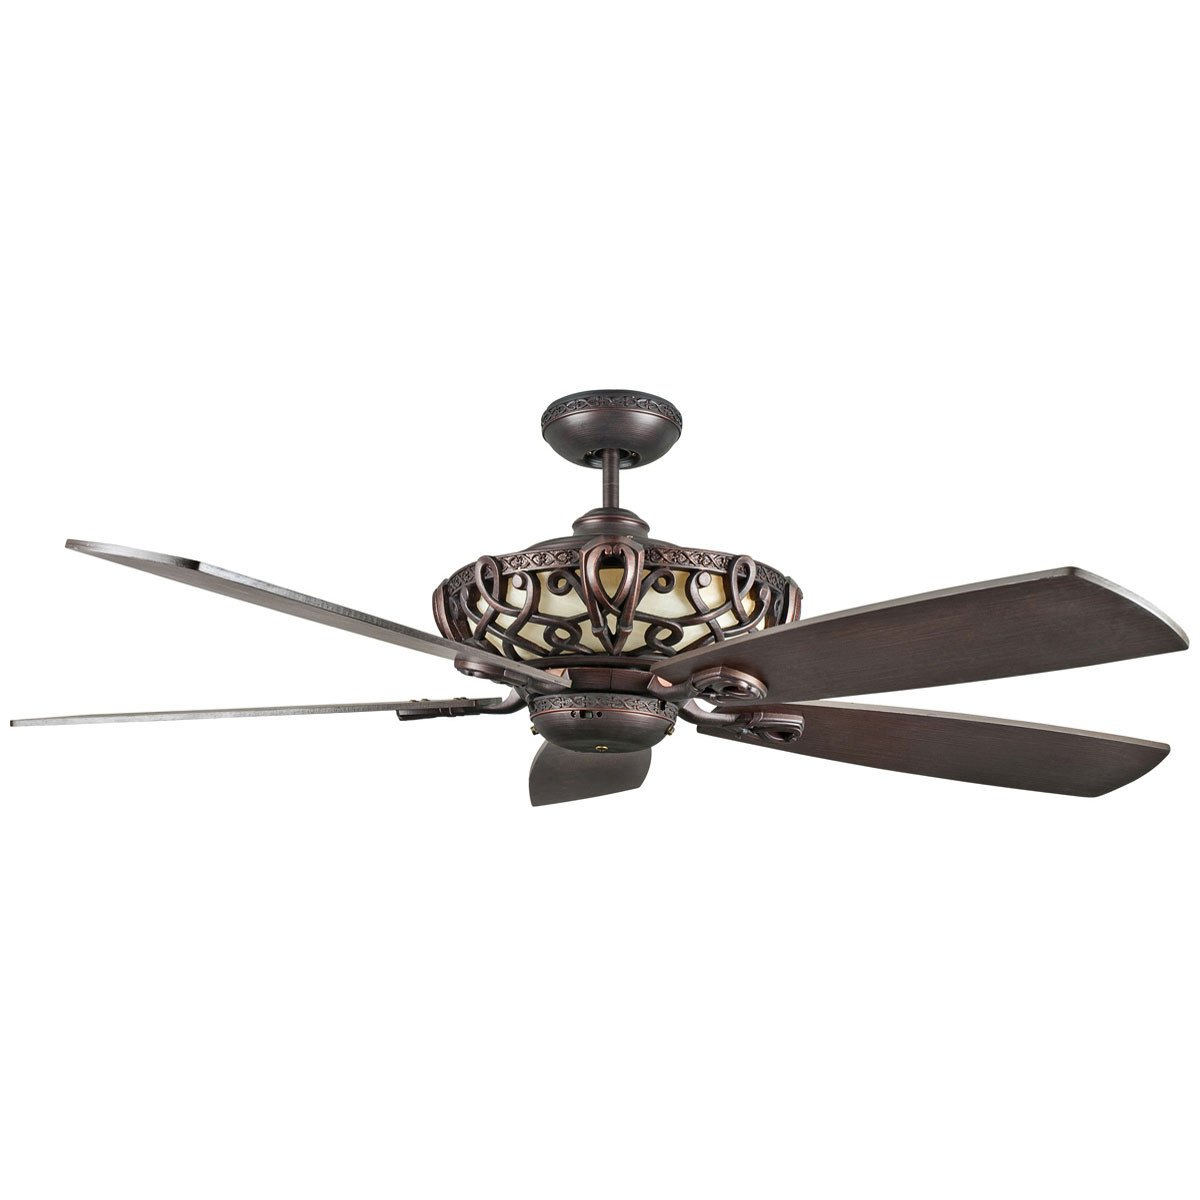 "Concord Fans 60"" Aracruz Oil Rubbed Bronze Large Ceiling Fan with Up-Light"